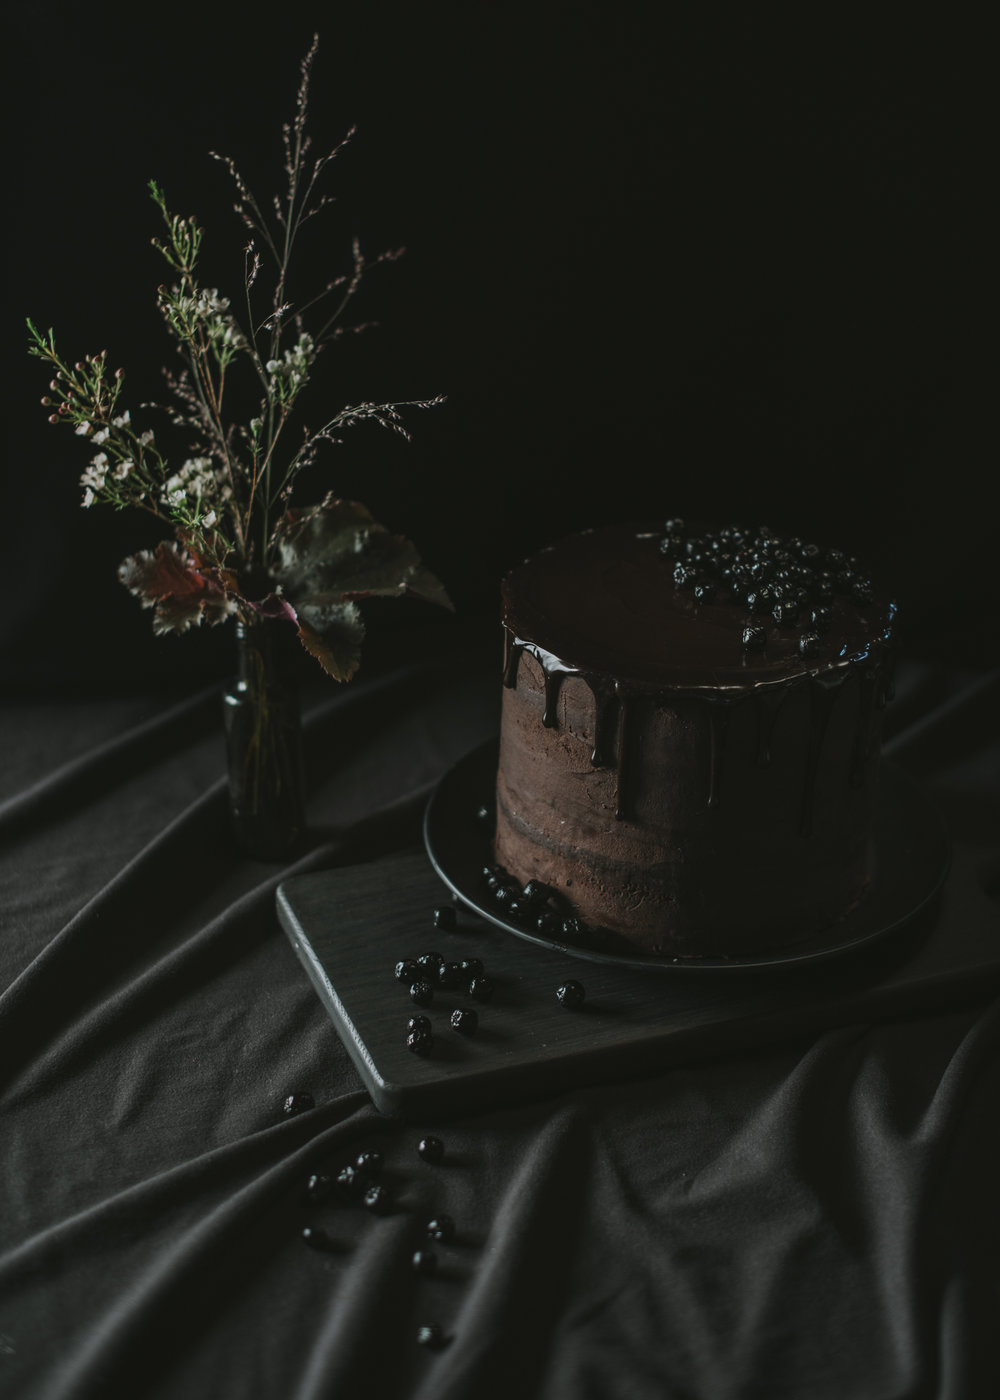 Chocolate frosted aronia berry cake with aronia berry jam and chocolate ganache